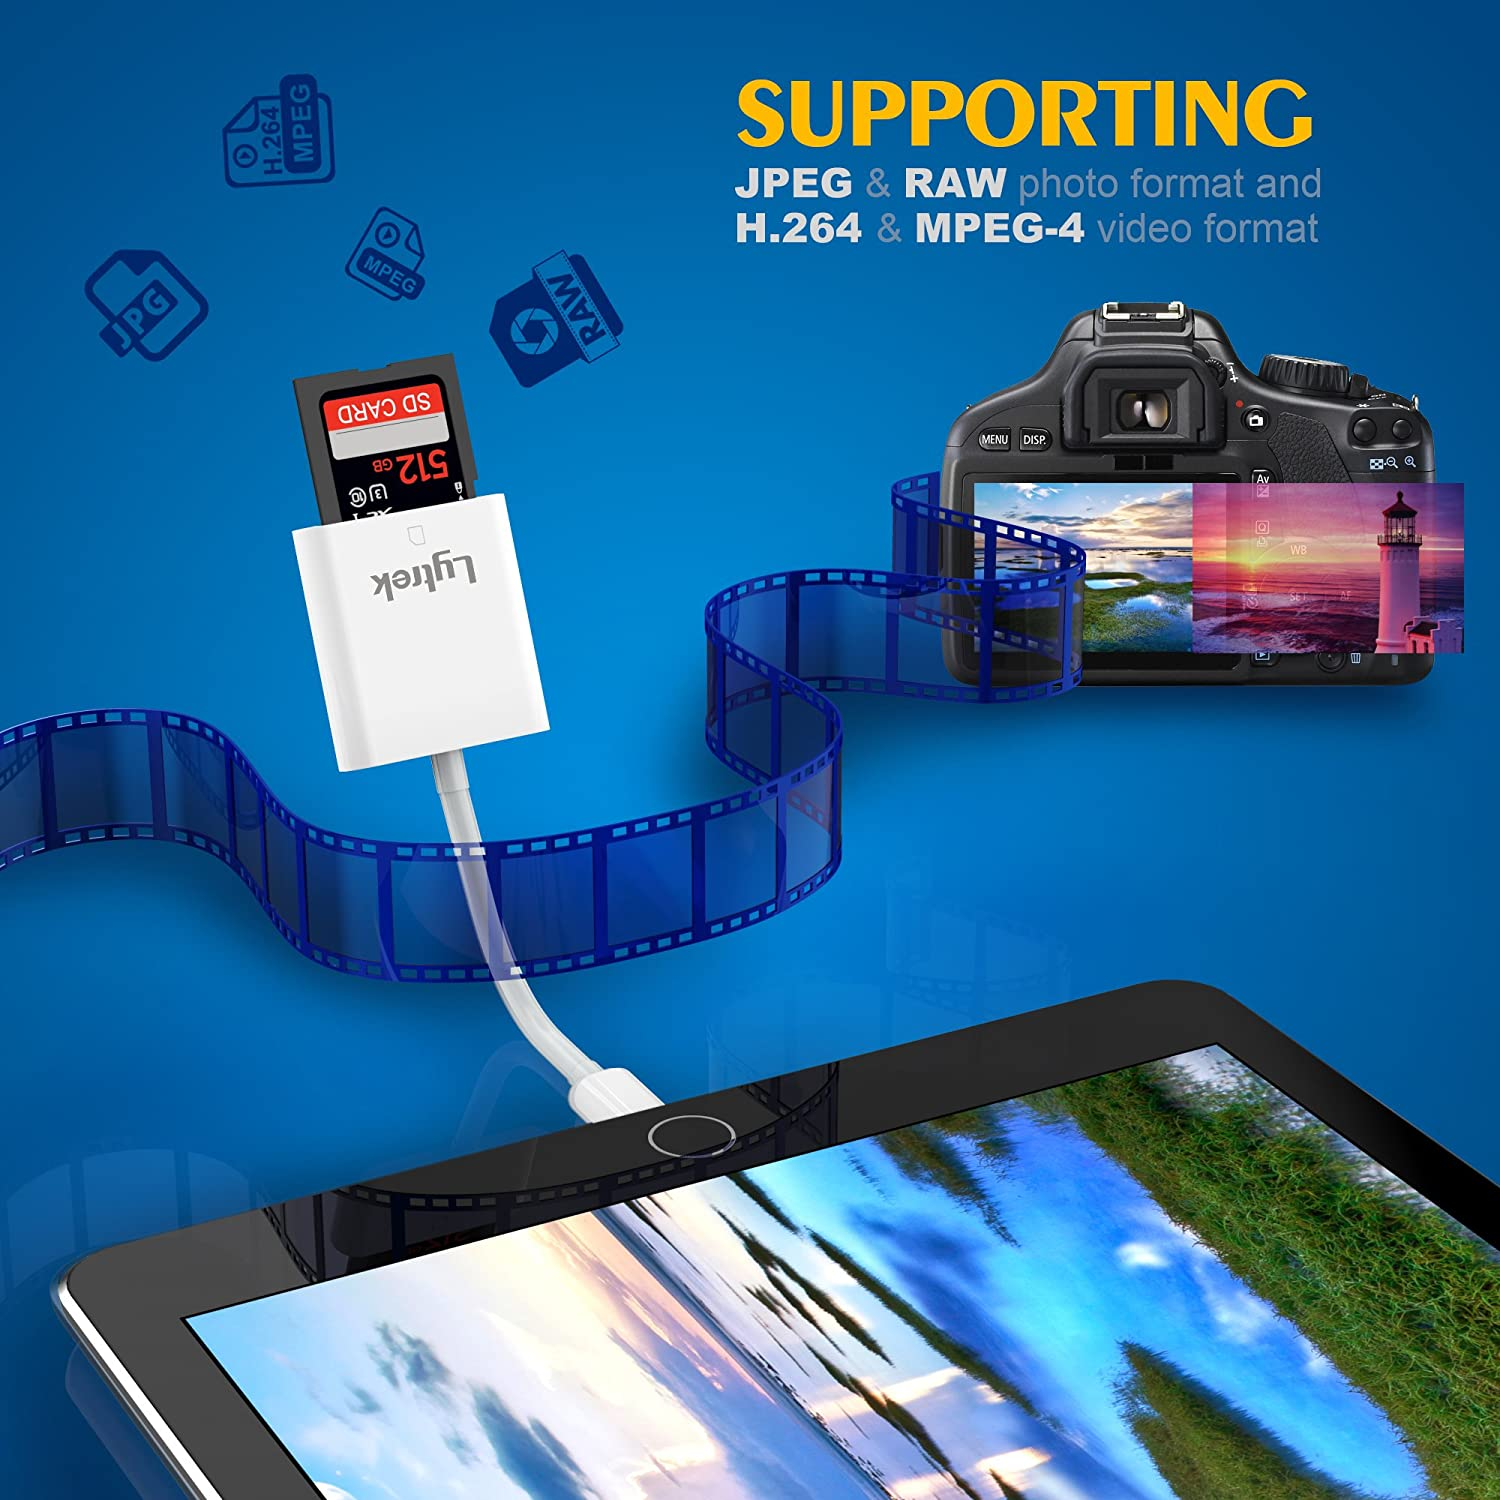 SD Card Reader for iPhone,Lytrek iPhone iPad Camera Connection Kit Support iOS 11-No App Needed